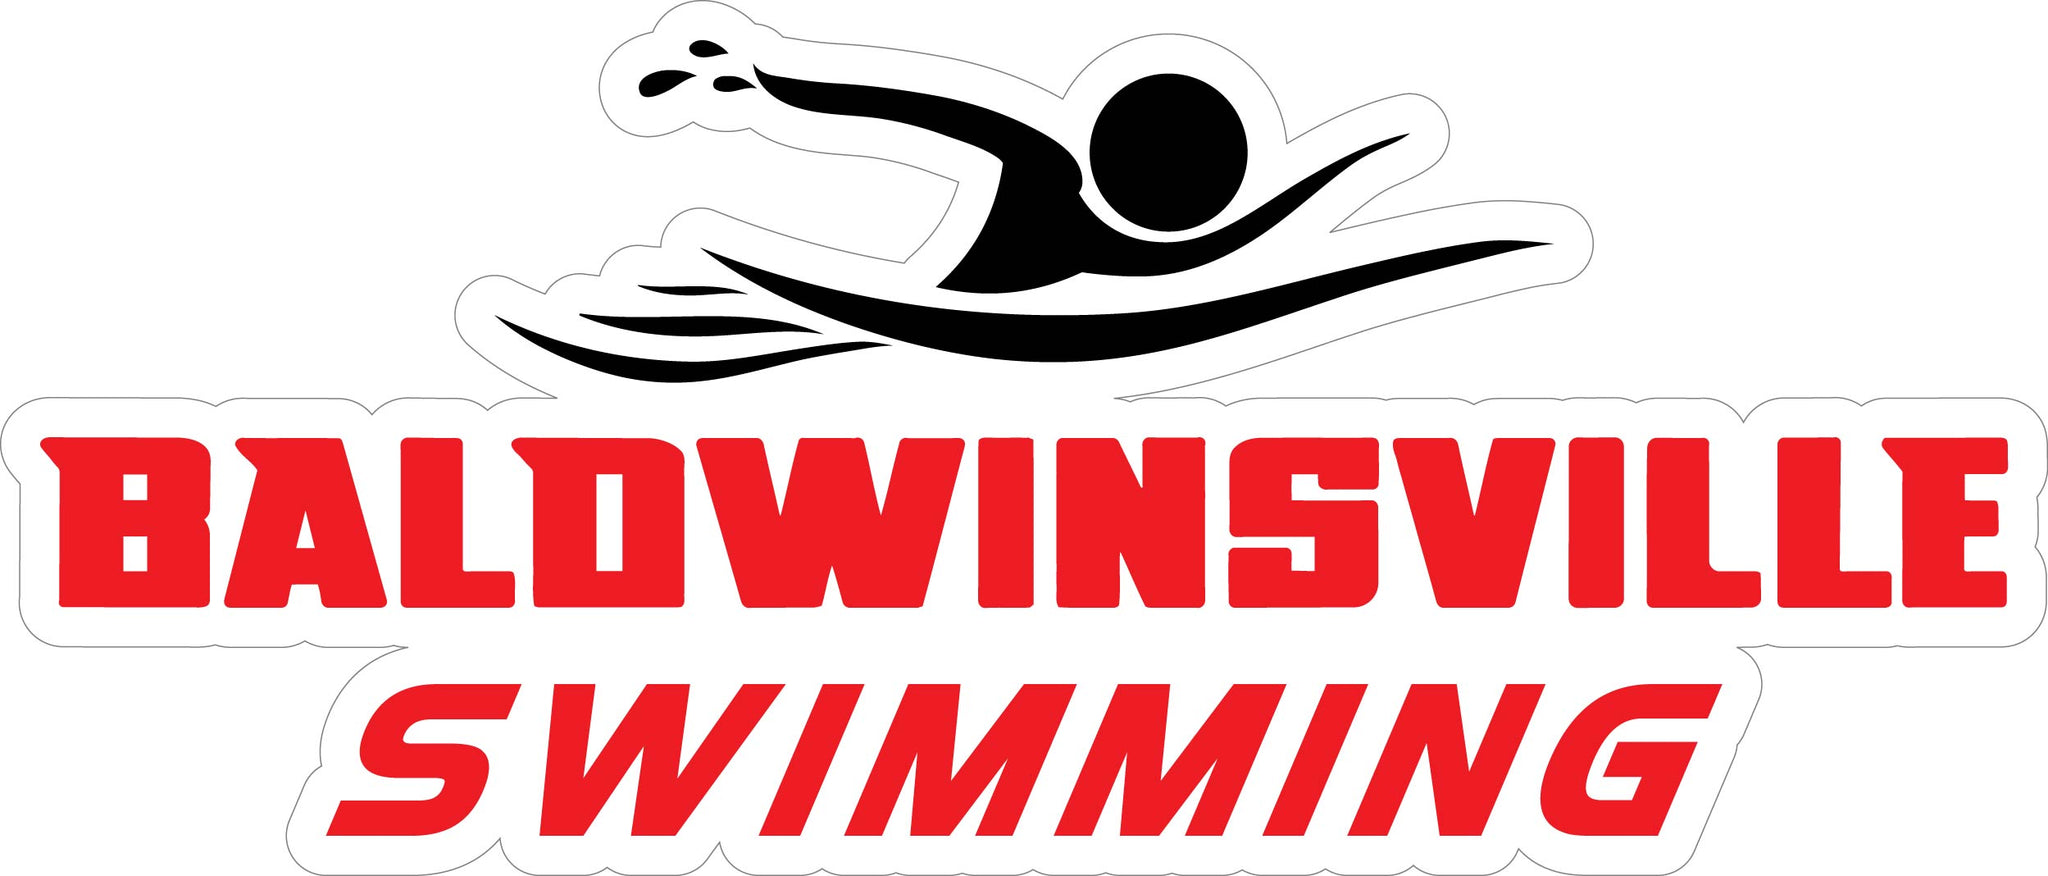 """Baldwinsville Swimming"" Red Lettering Decal"